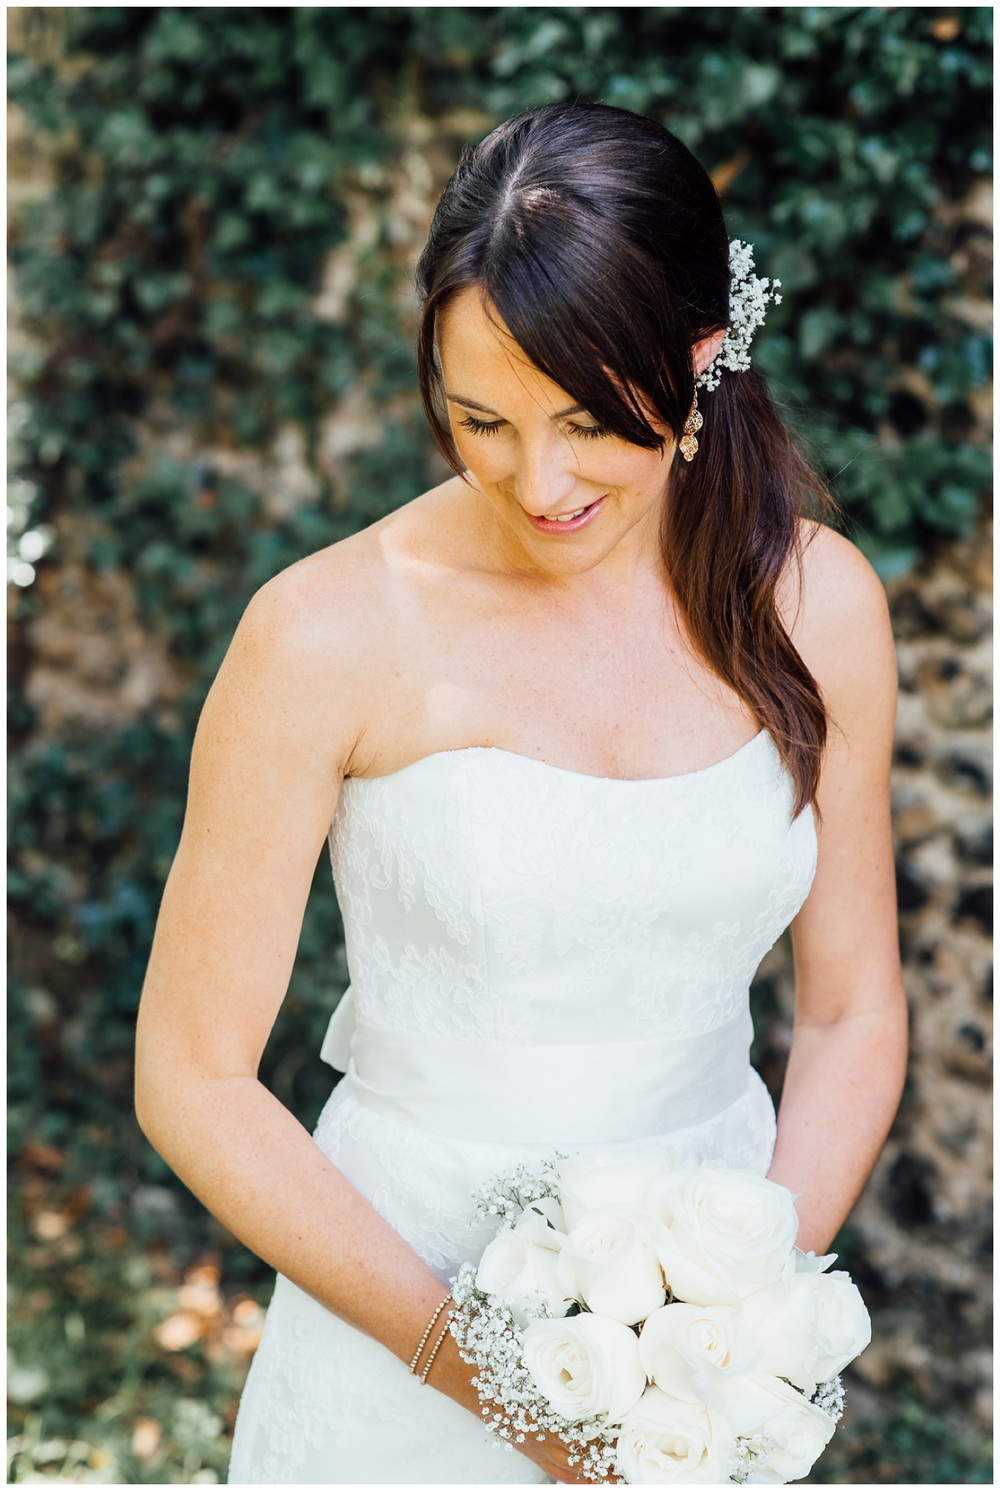 Nikki_Cooper_Photography_Lucy&Scott_Wedding_Photos_The_Crab_Tree_Pub_Horsham_1032.jpg